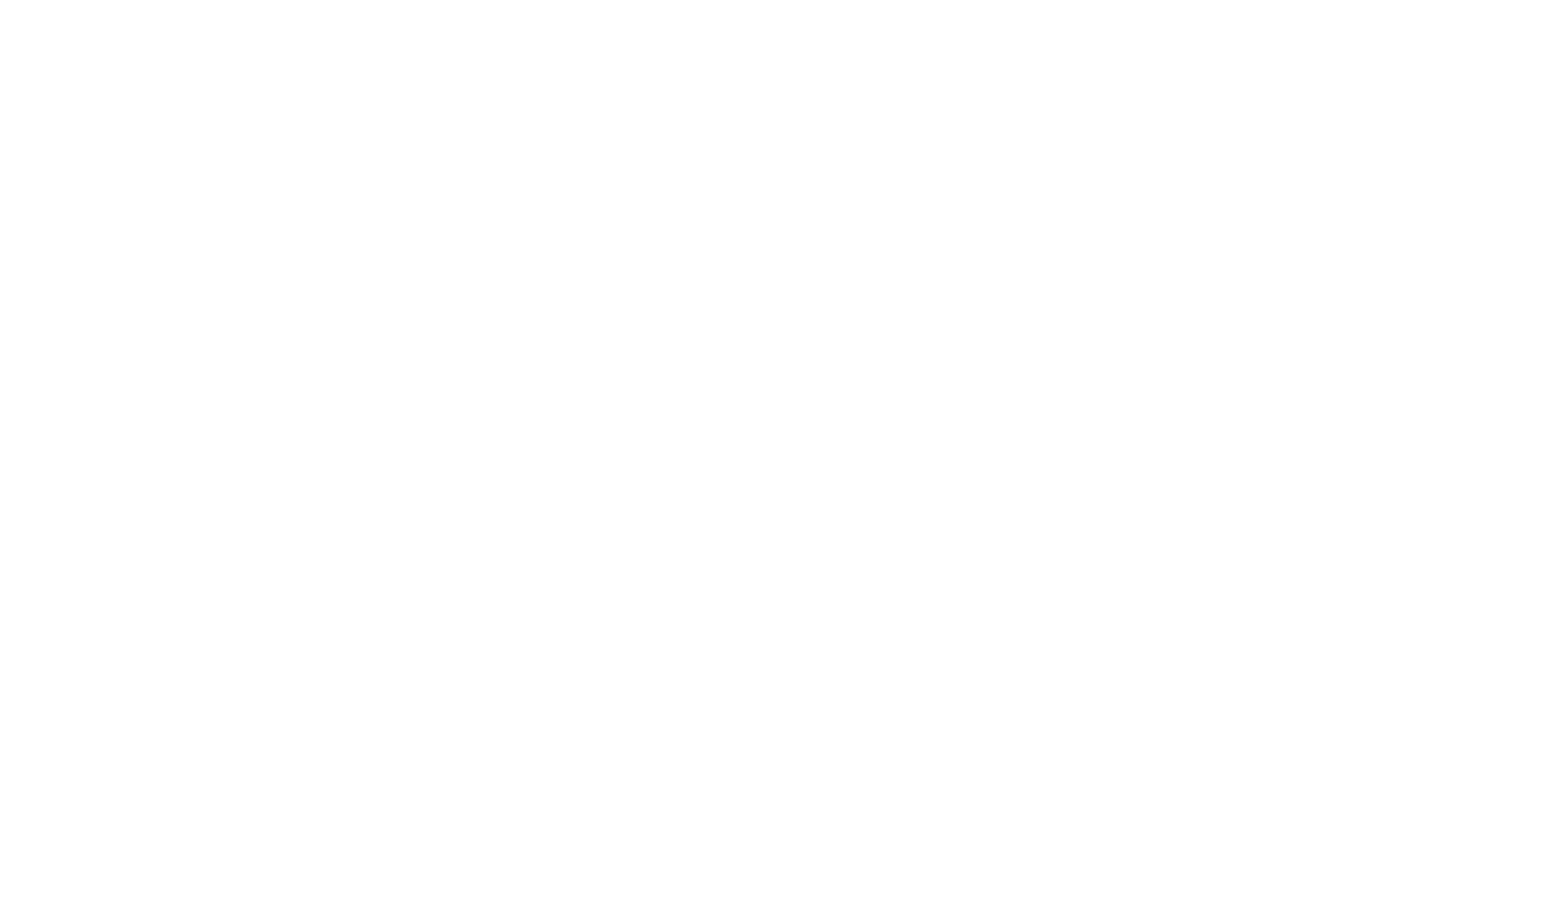 Loughborough based NeoTimber brand identity for Buyrite group